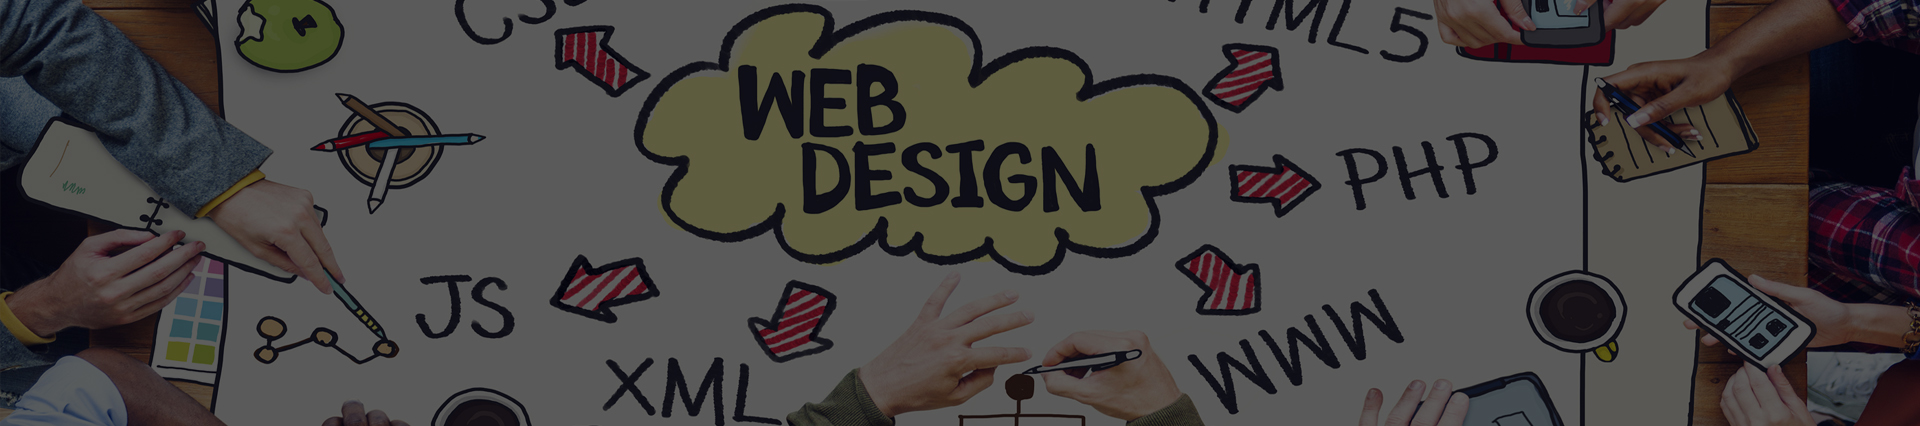 /assets/cms/uploads/images/services-web-design1.jpg banner